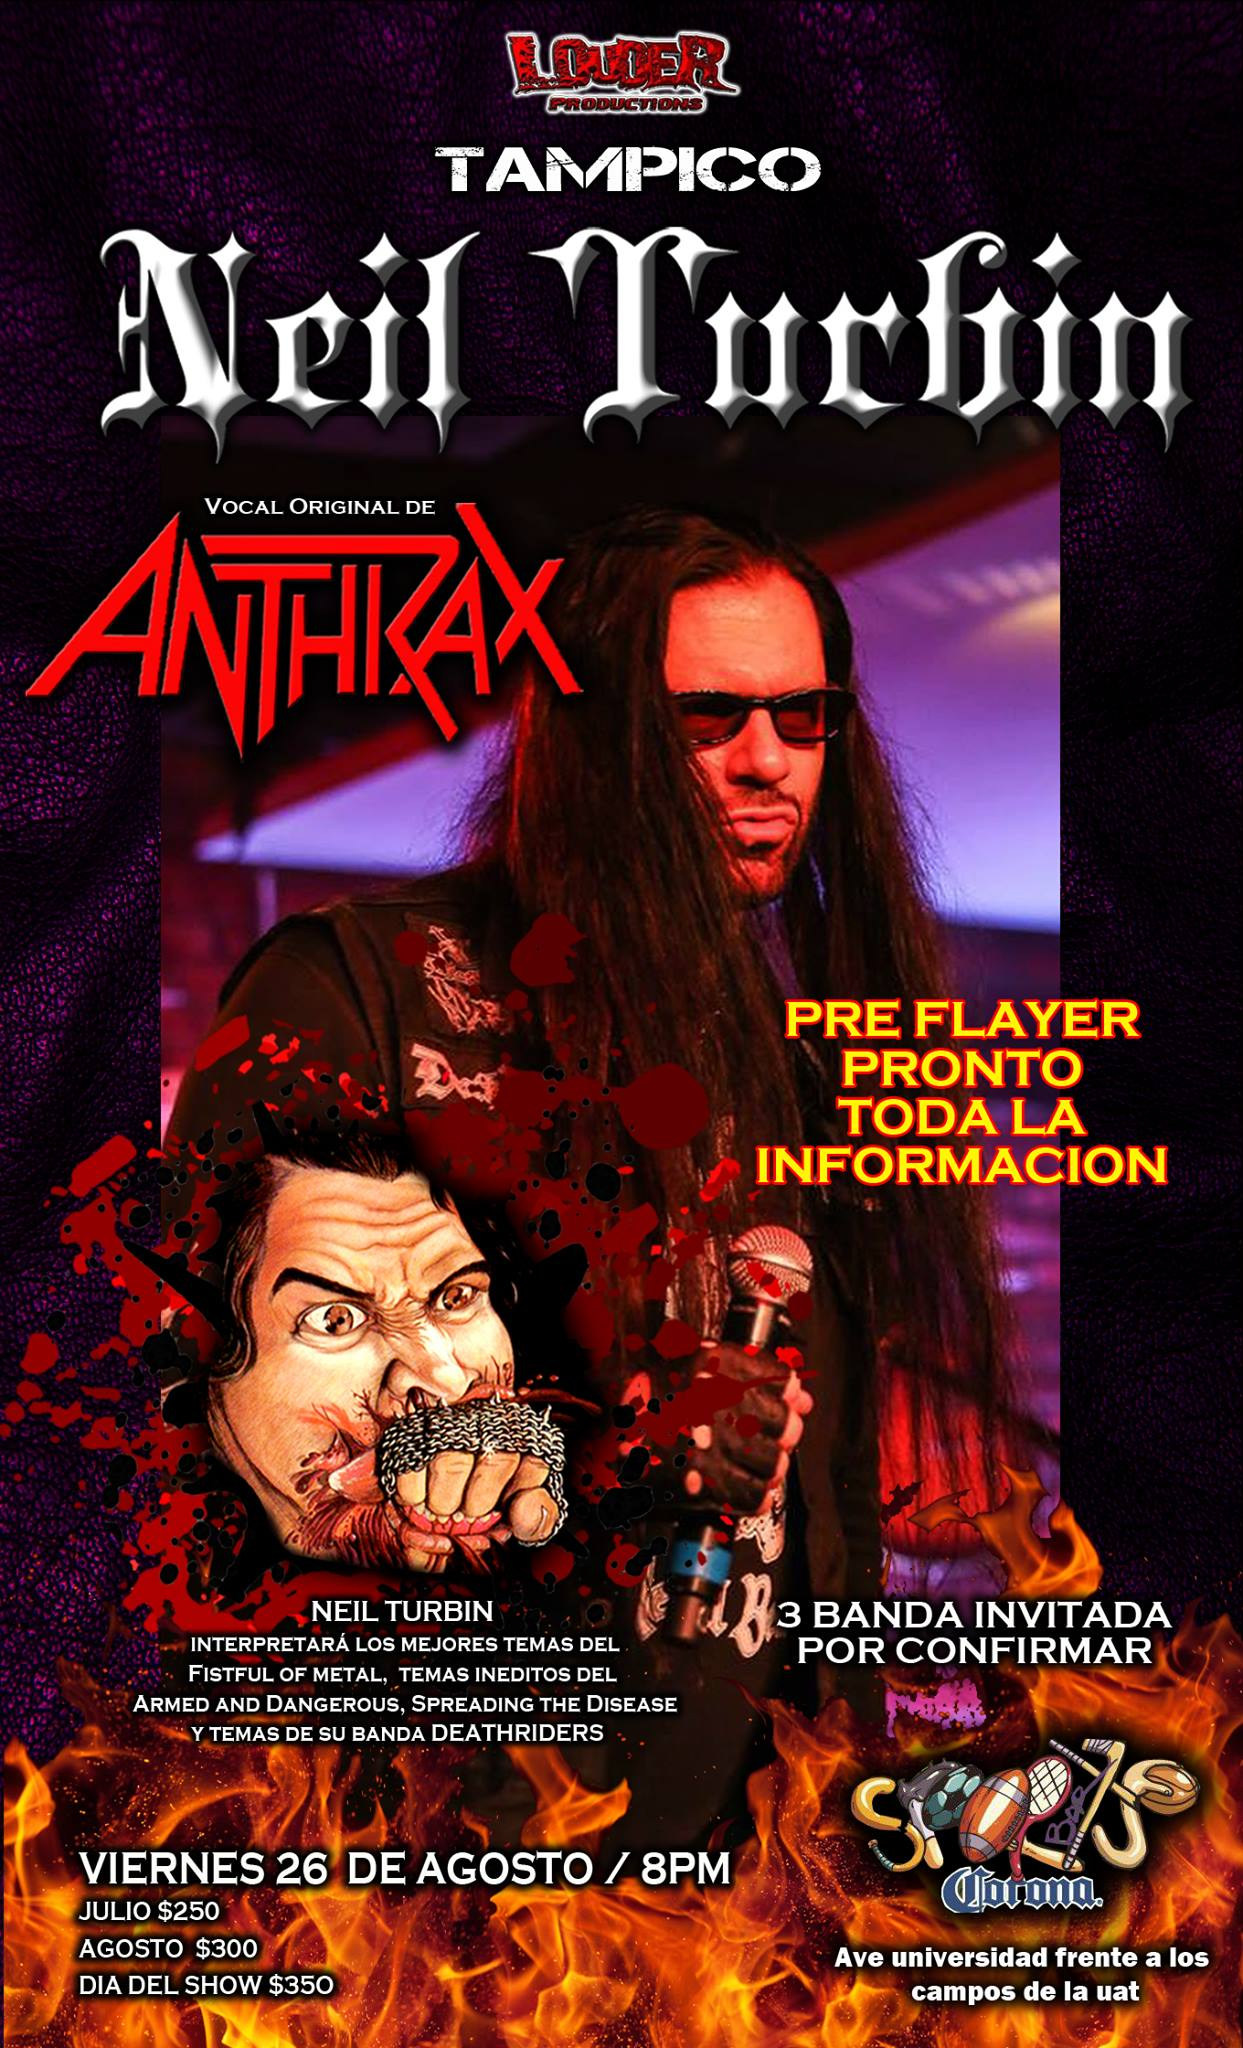 Neil Turbin The Metal Beast Is Back Tour Latin America 2016 Tampico, Mexico 8/26/2016